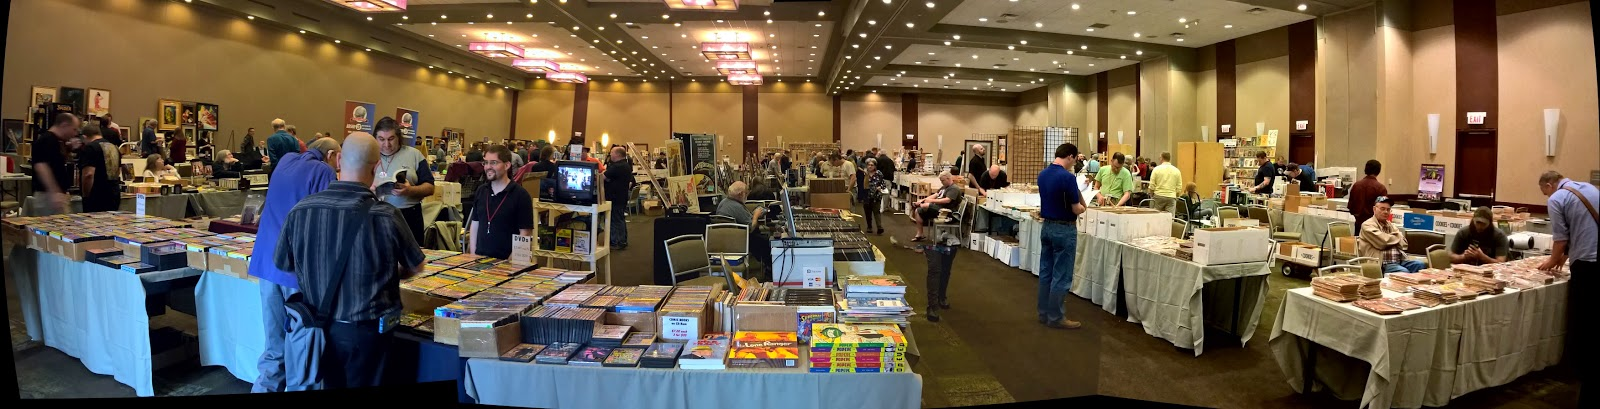 Dealer's room at Windy City Pulp and Paper 2015